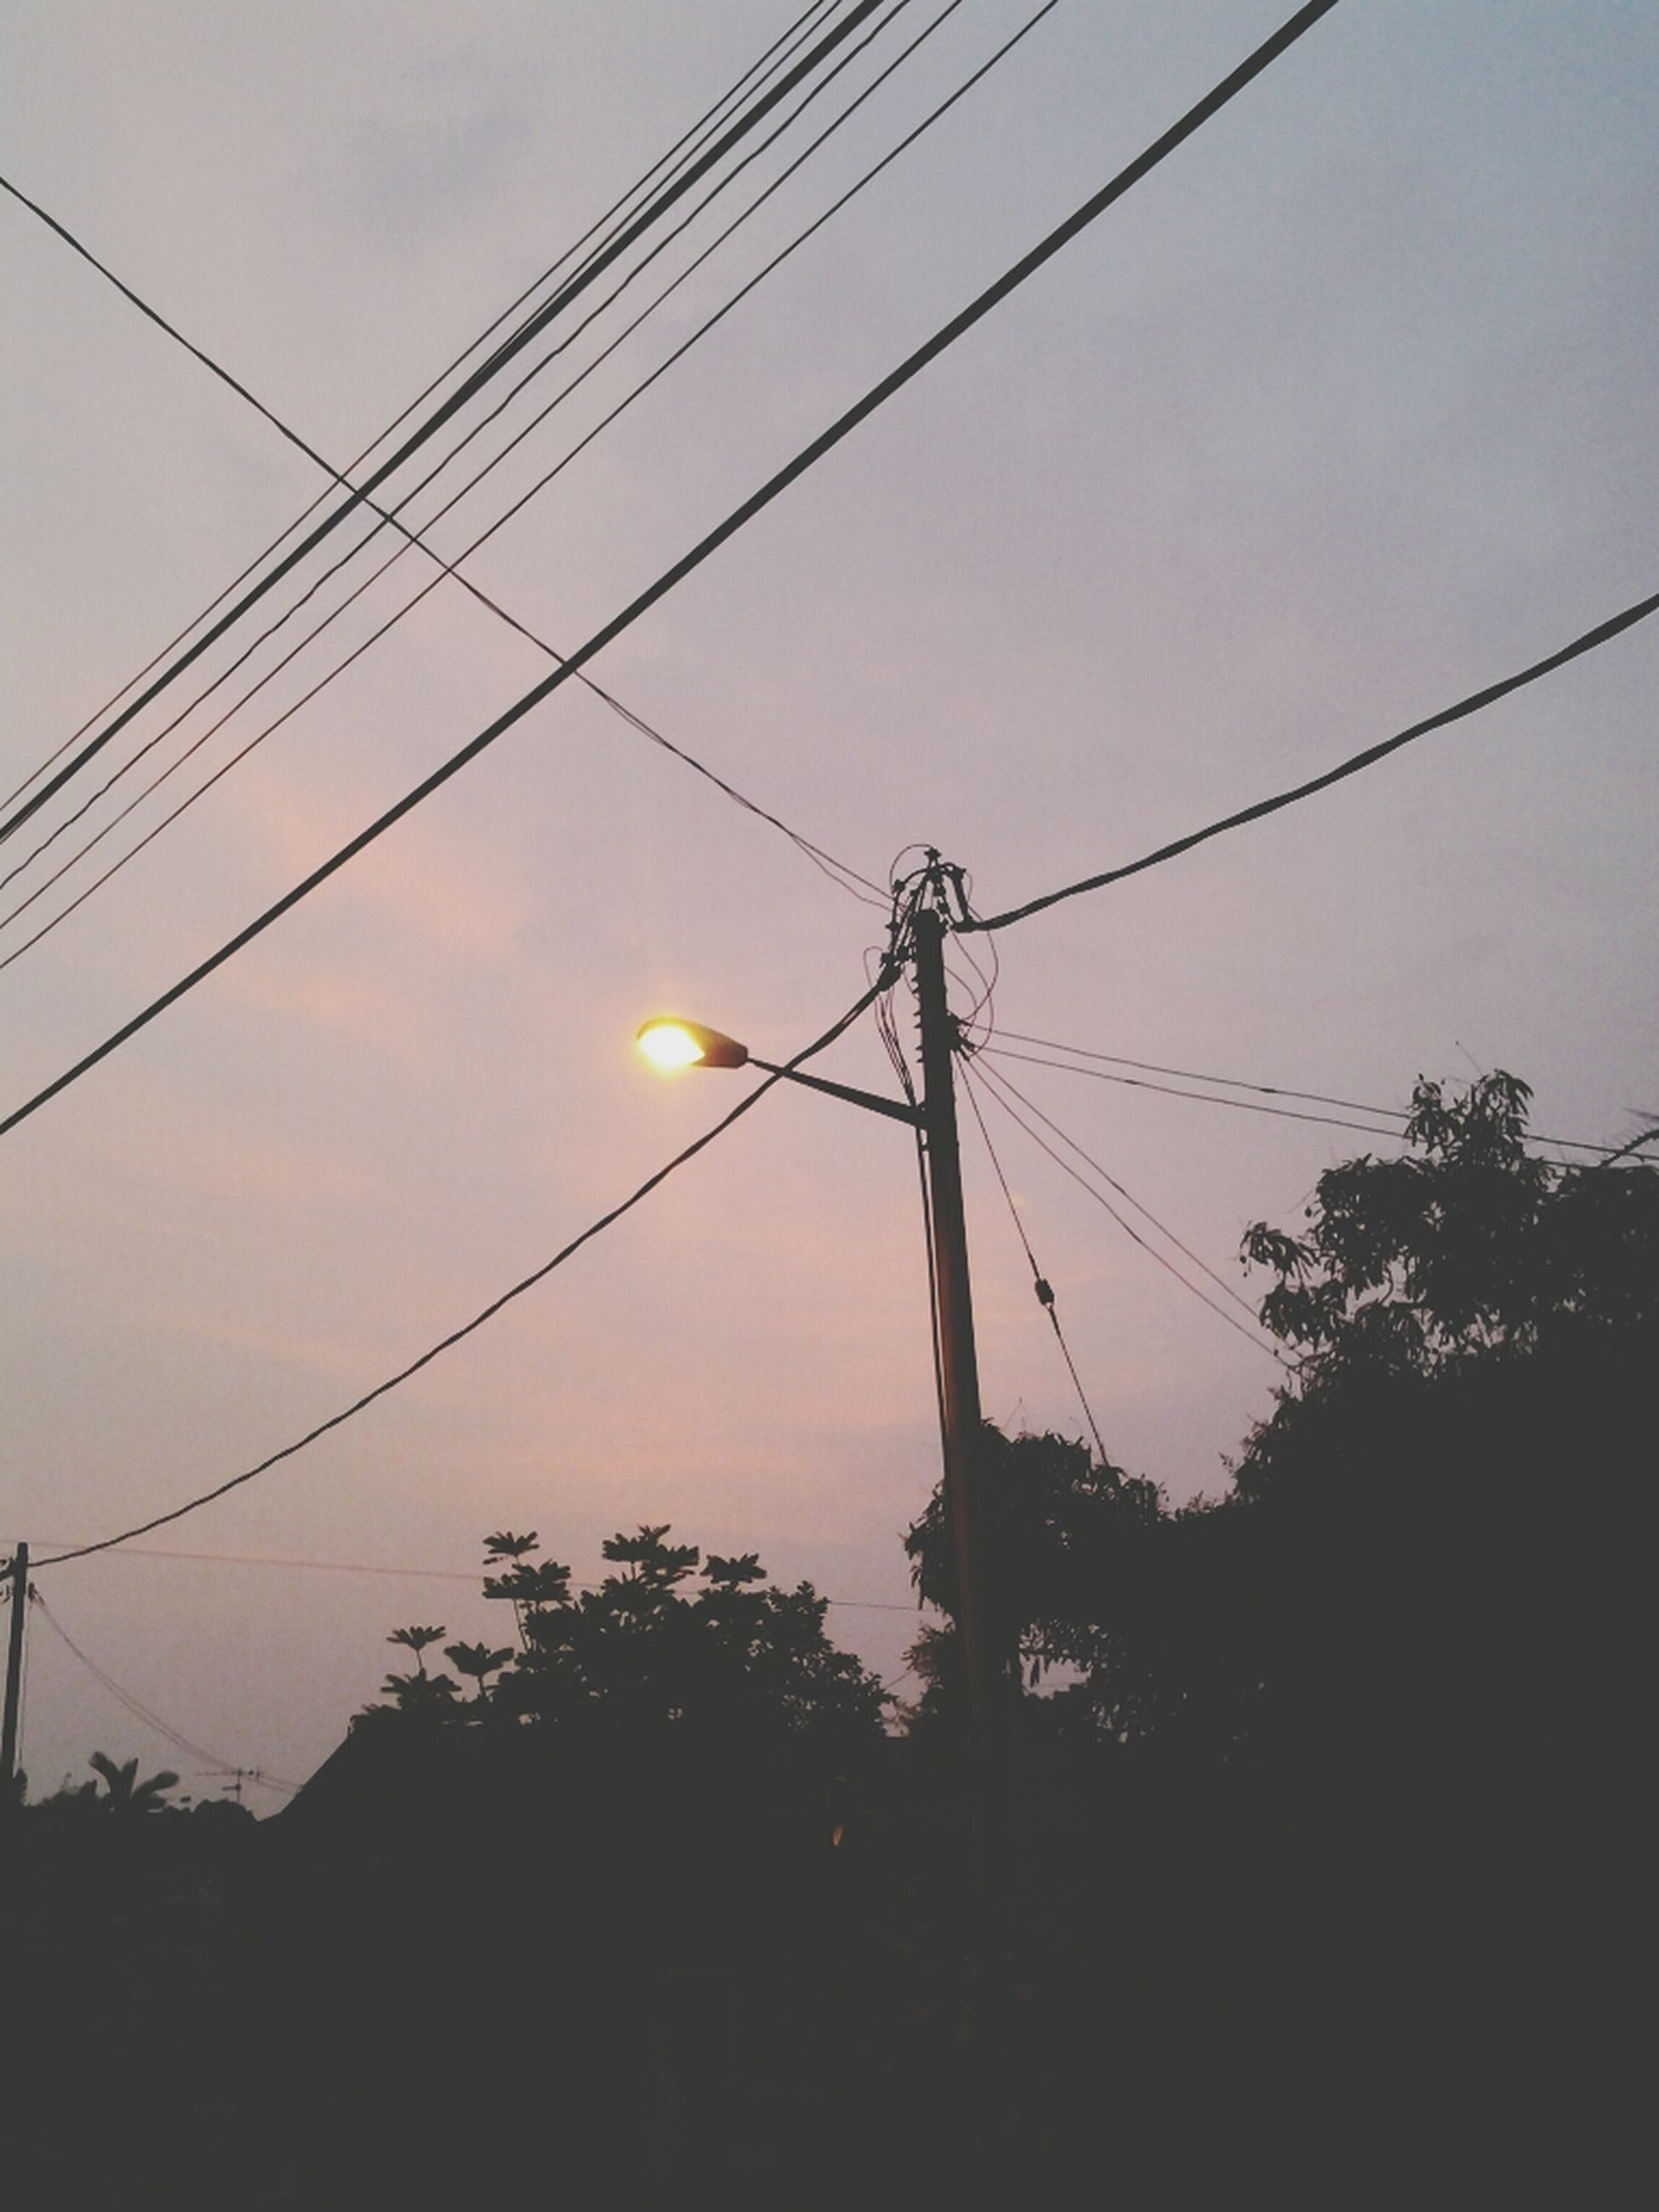 power line, power supply, electricity pylon, electricity, cable, fuel and power generation, low angle view, connection, technology, sky, silhouette, power cable, sunset, built structure, telephone pole, telephone line, outdoors, dusk, no people, complexity